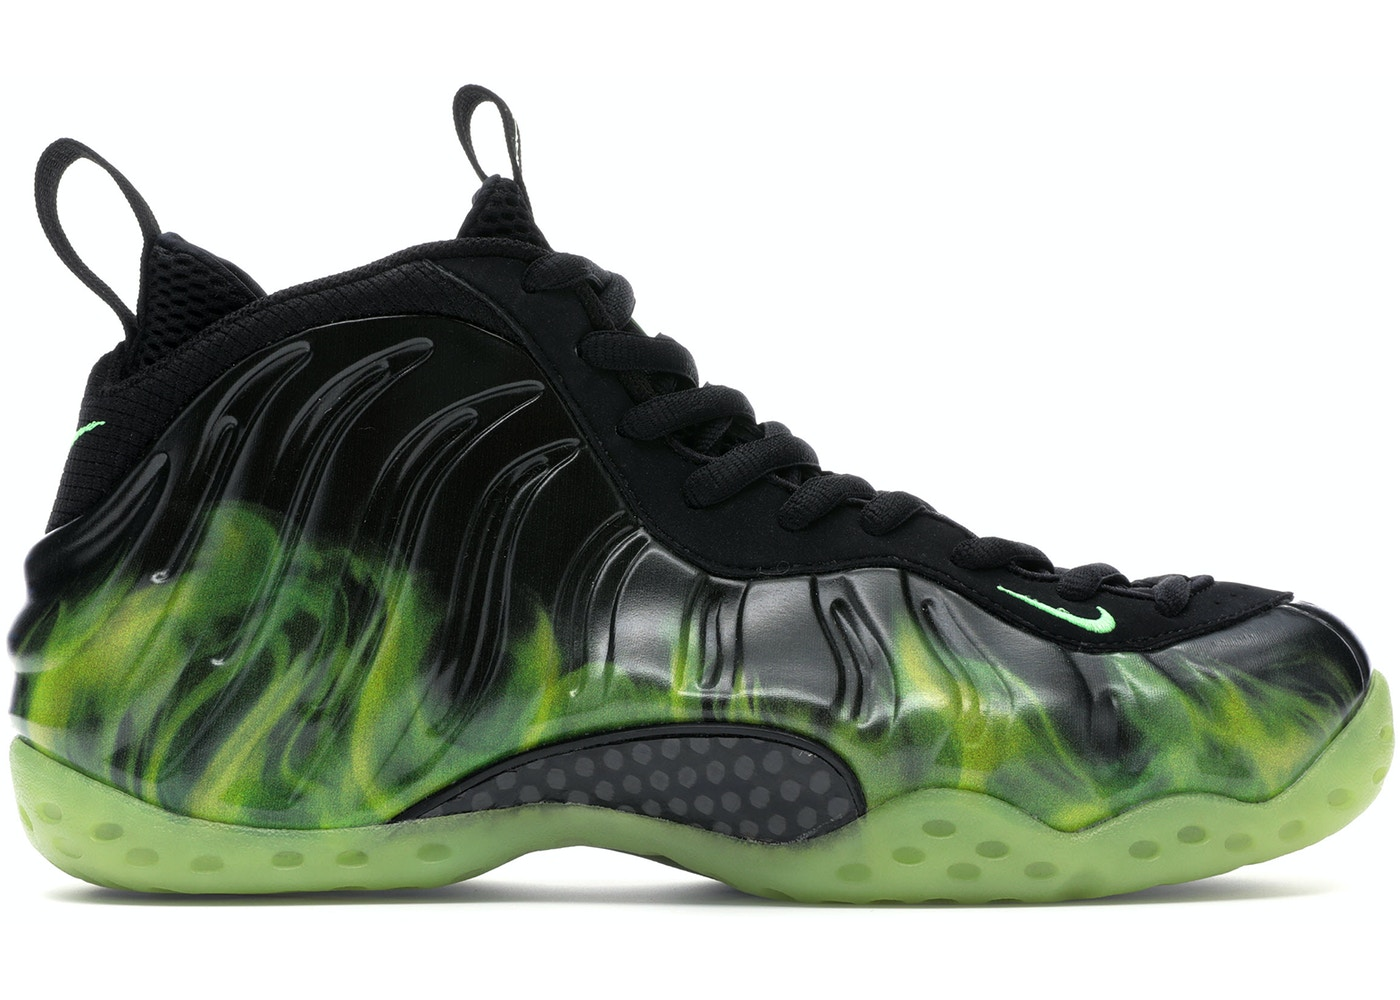 best sneakers 580e8 441b0 Air Foamposite One ParaNorman - 579771-003